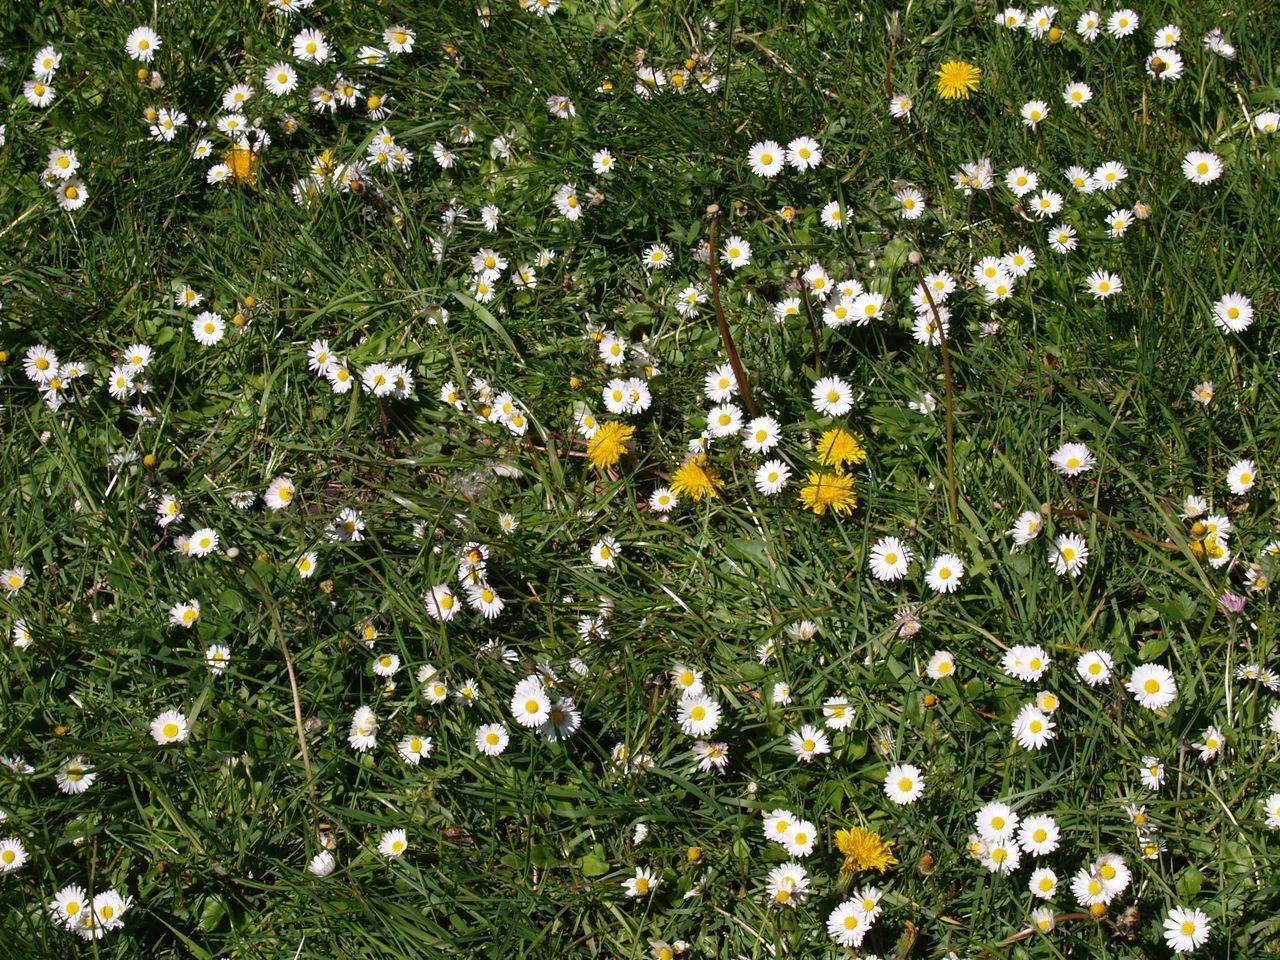 flower, grass, nature, growth, uncultivated, meadow, field, delicate, summer, beauty in nature, fragility, freshness, no people, beauty, blooming, outdoors, flower head, day